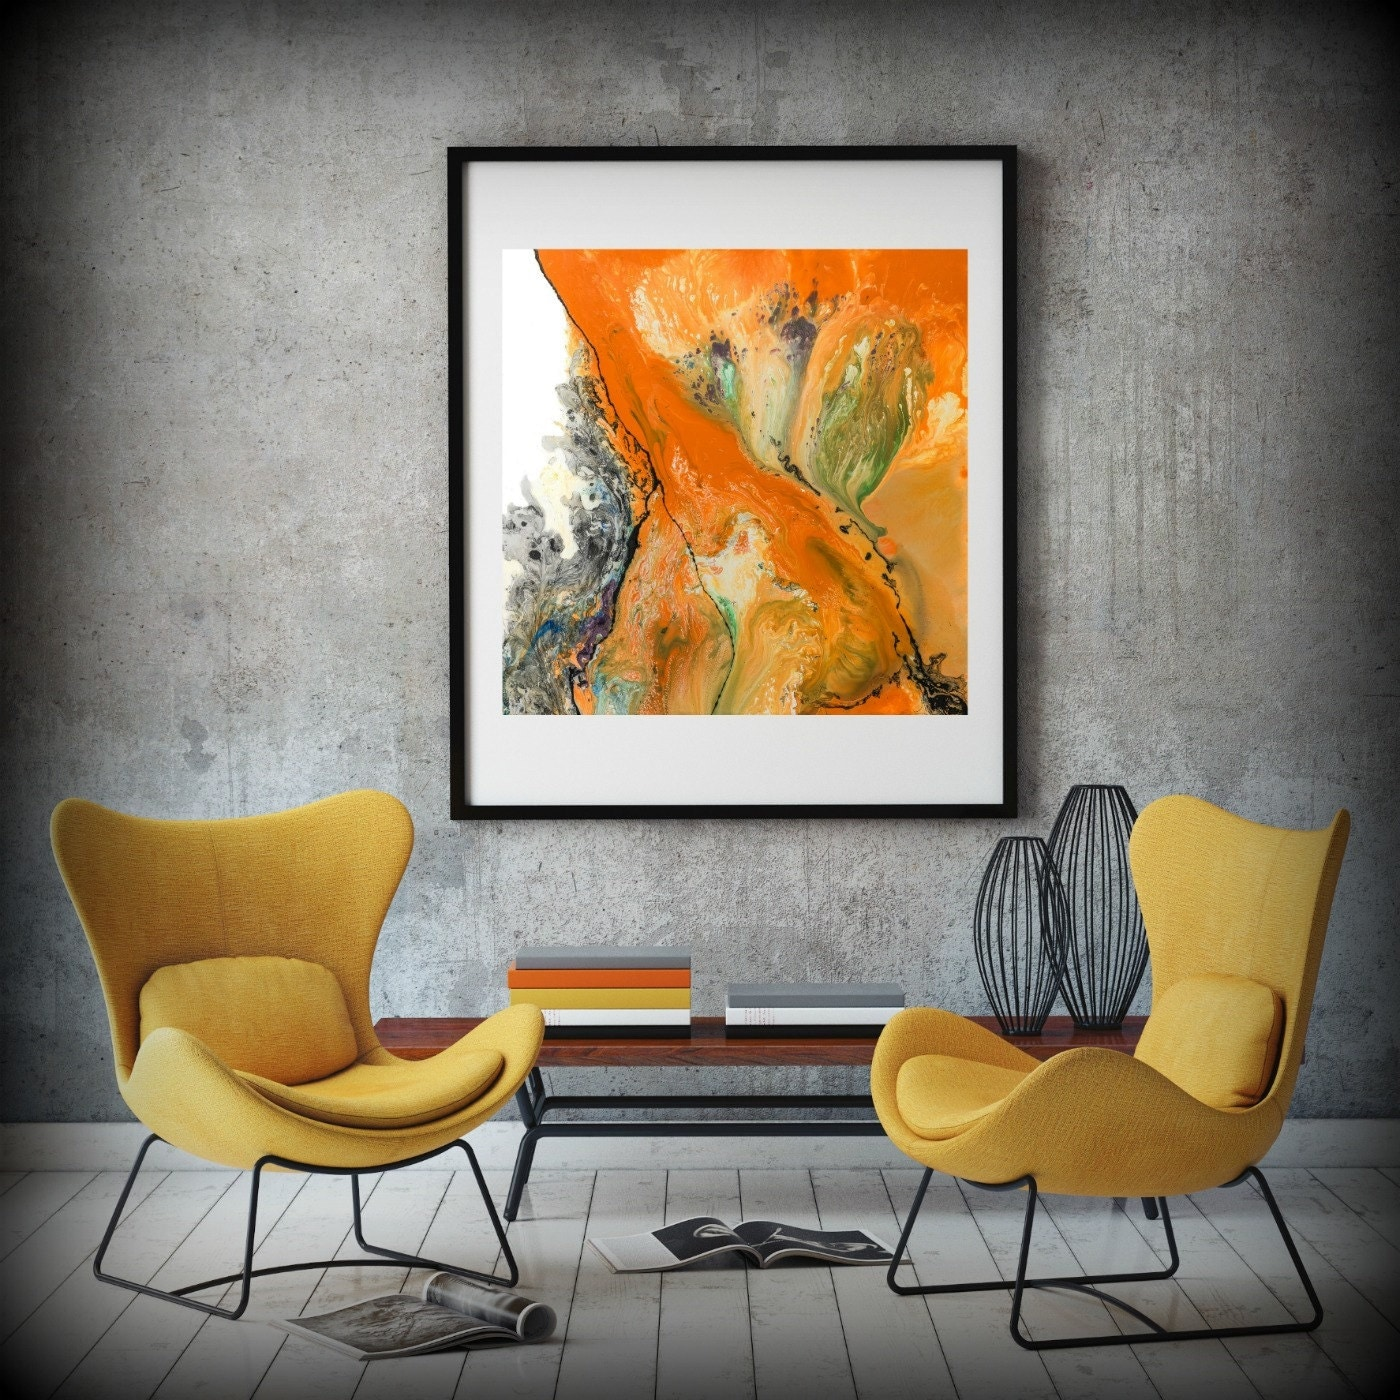 LIVING ROOM DECOR Square Wall Decor Orange Art Dining Room Bathroom Print Bedroom Canvas Home Hanging